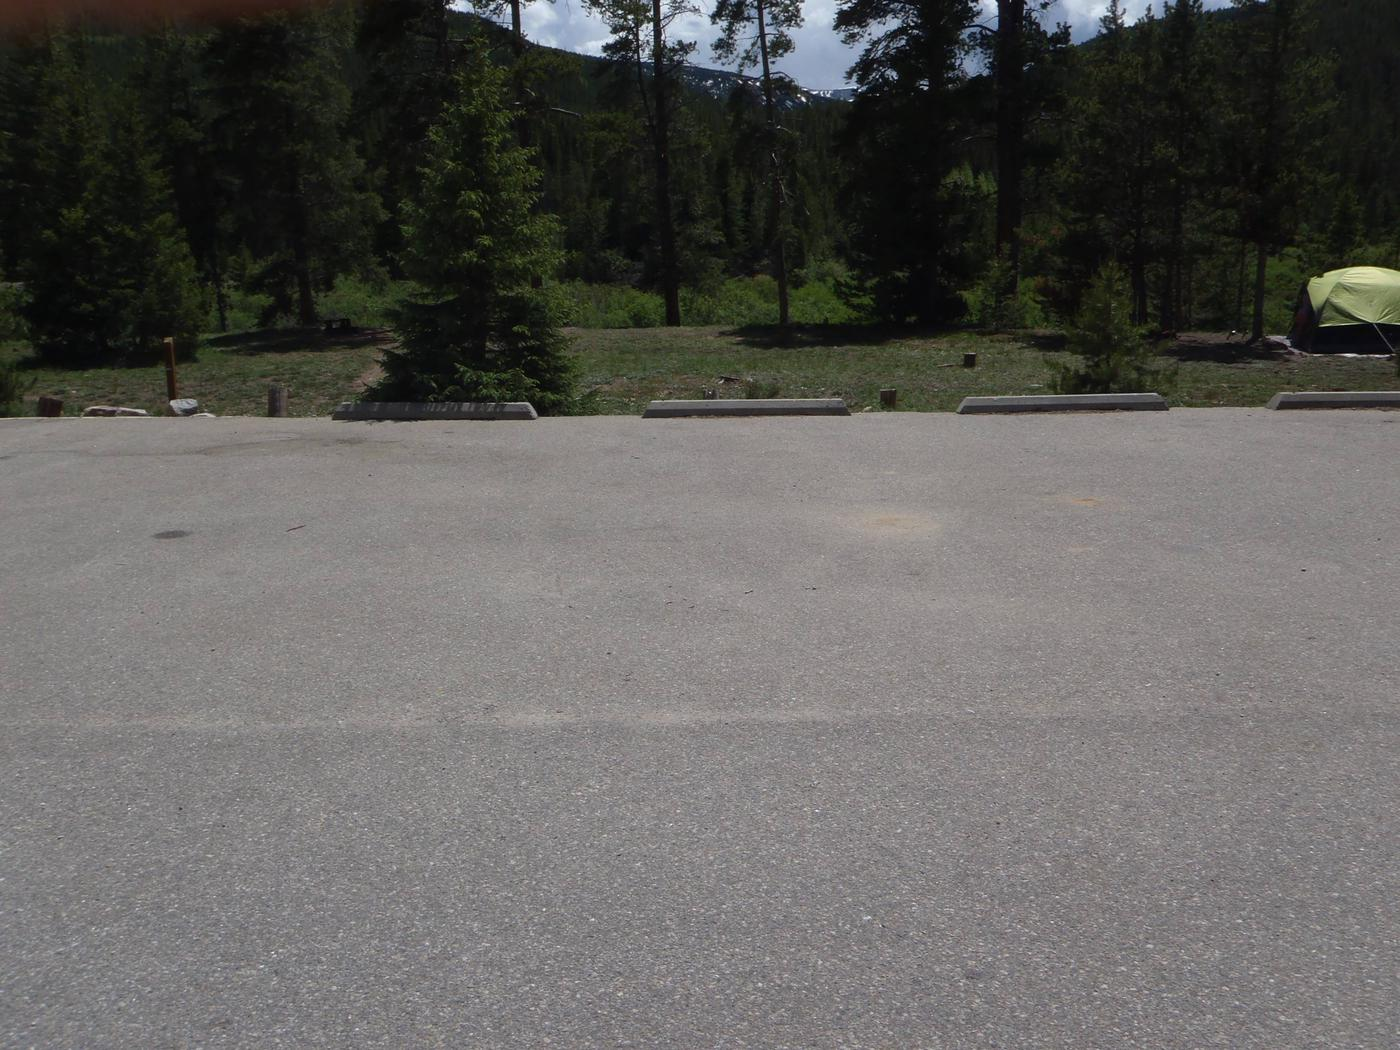 May Queen Campground, site 2 parking